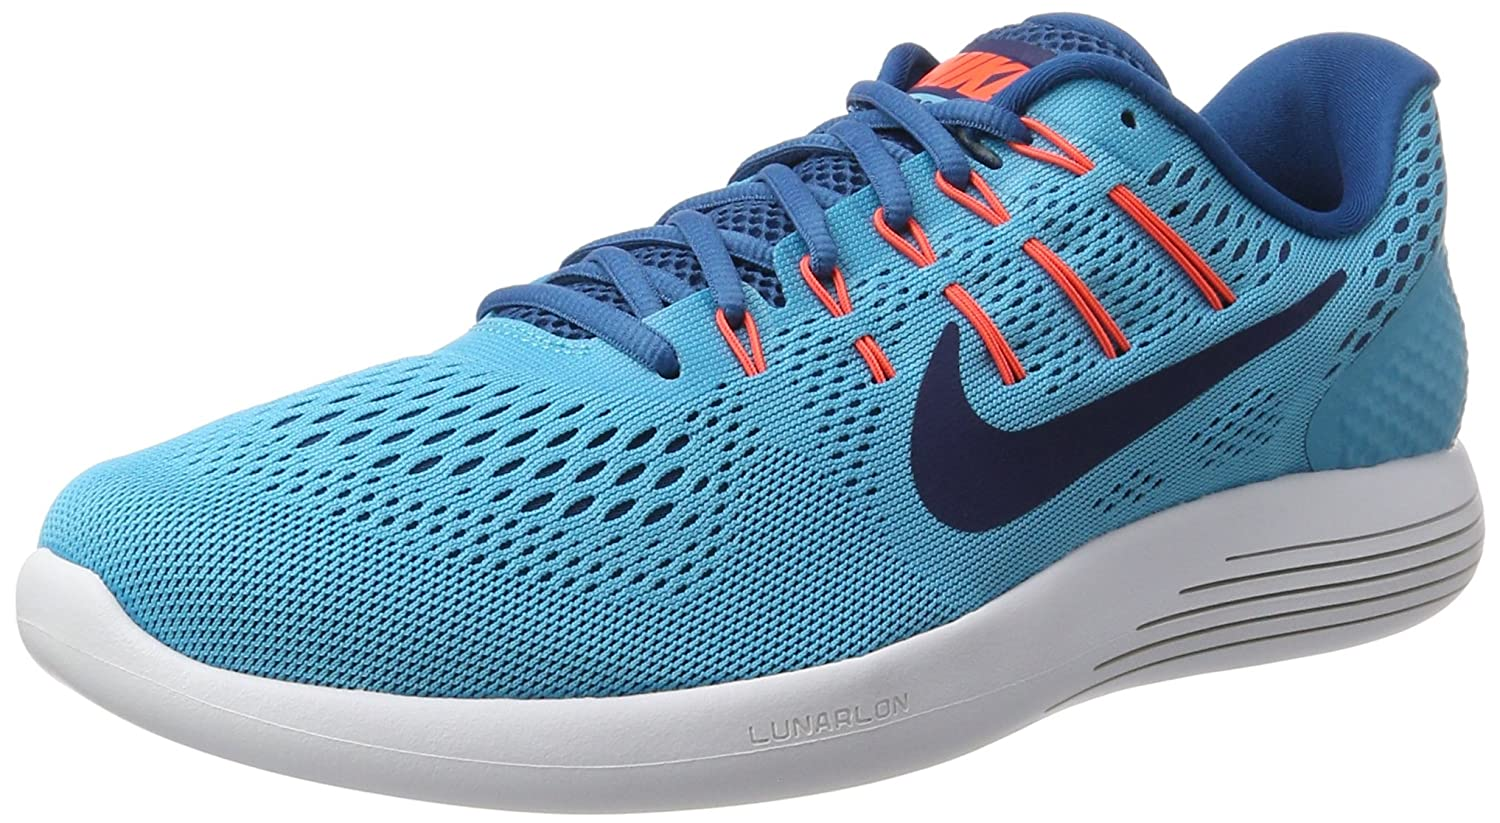 cheap for discount ab51a 99d2a Nike Men s Lunarglide 8 Training Shoes, Dunkelblau (Armory Navy Electro  Green Grey)